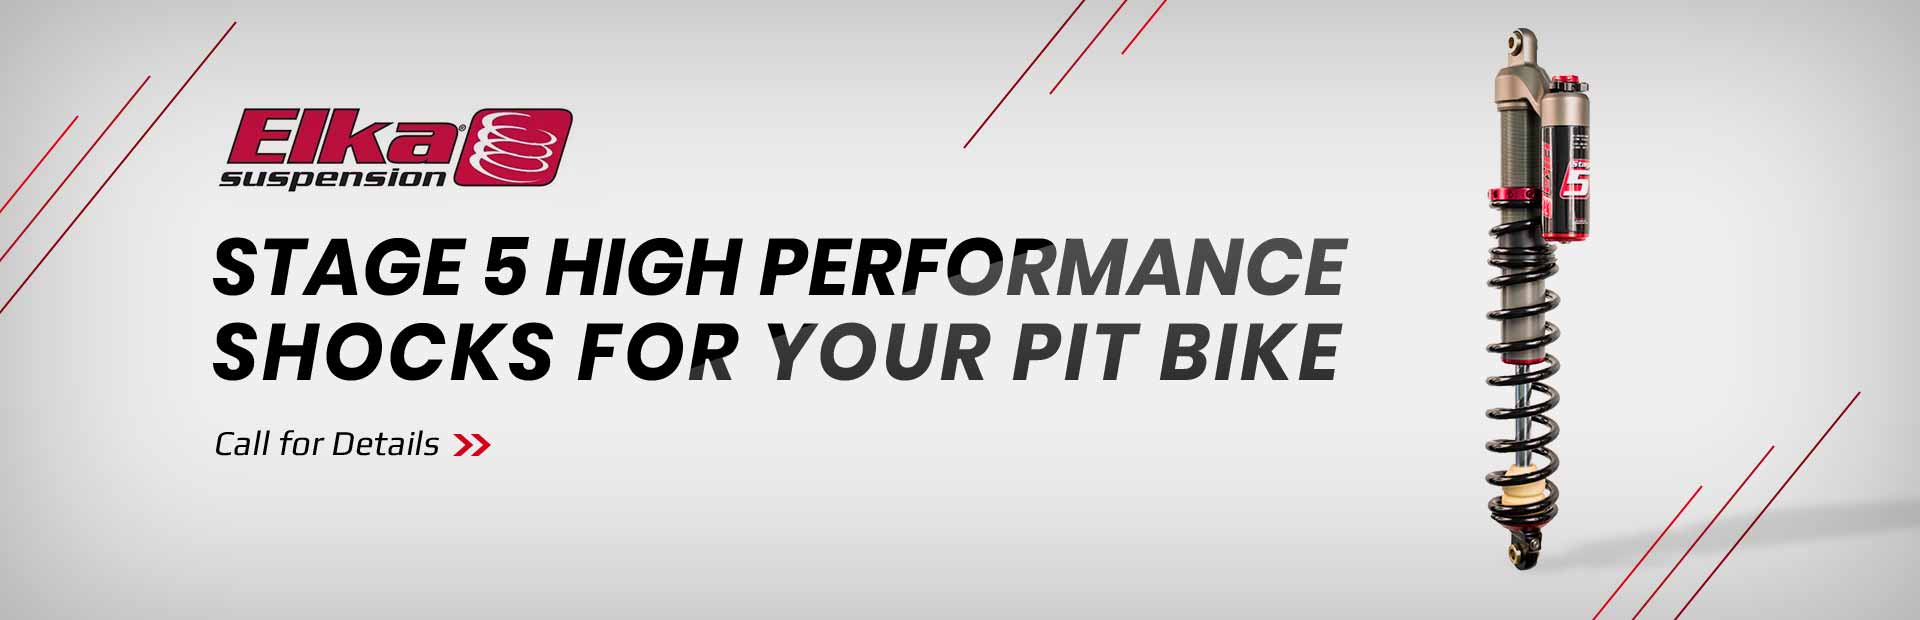 Buffalo Powersports & Pit Bike Dealer - Dyno Tuning, Hisun